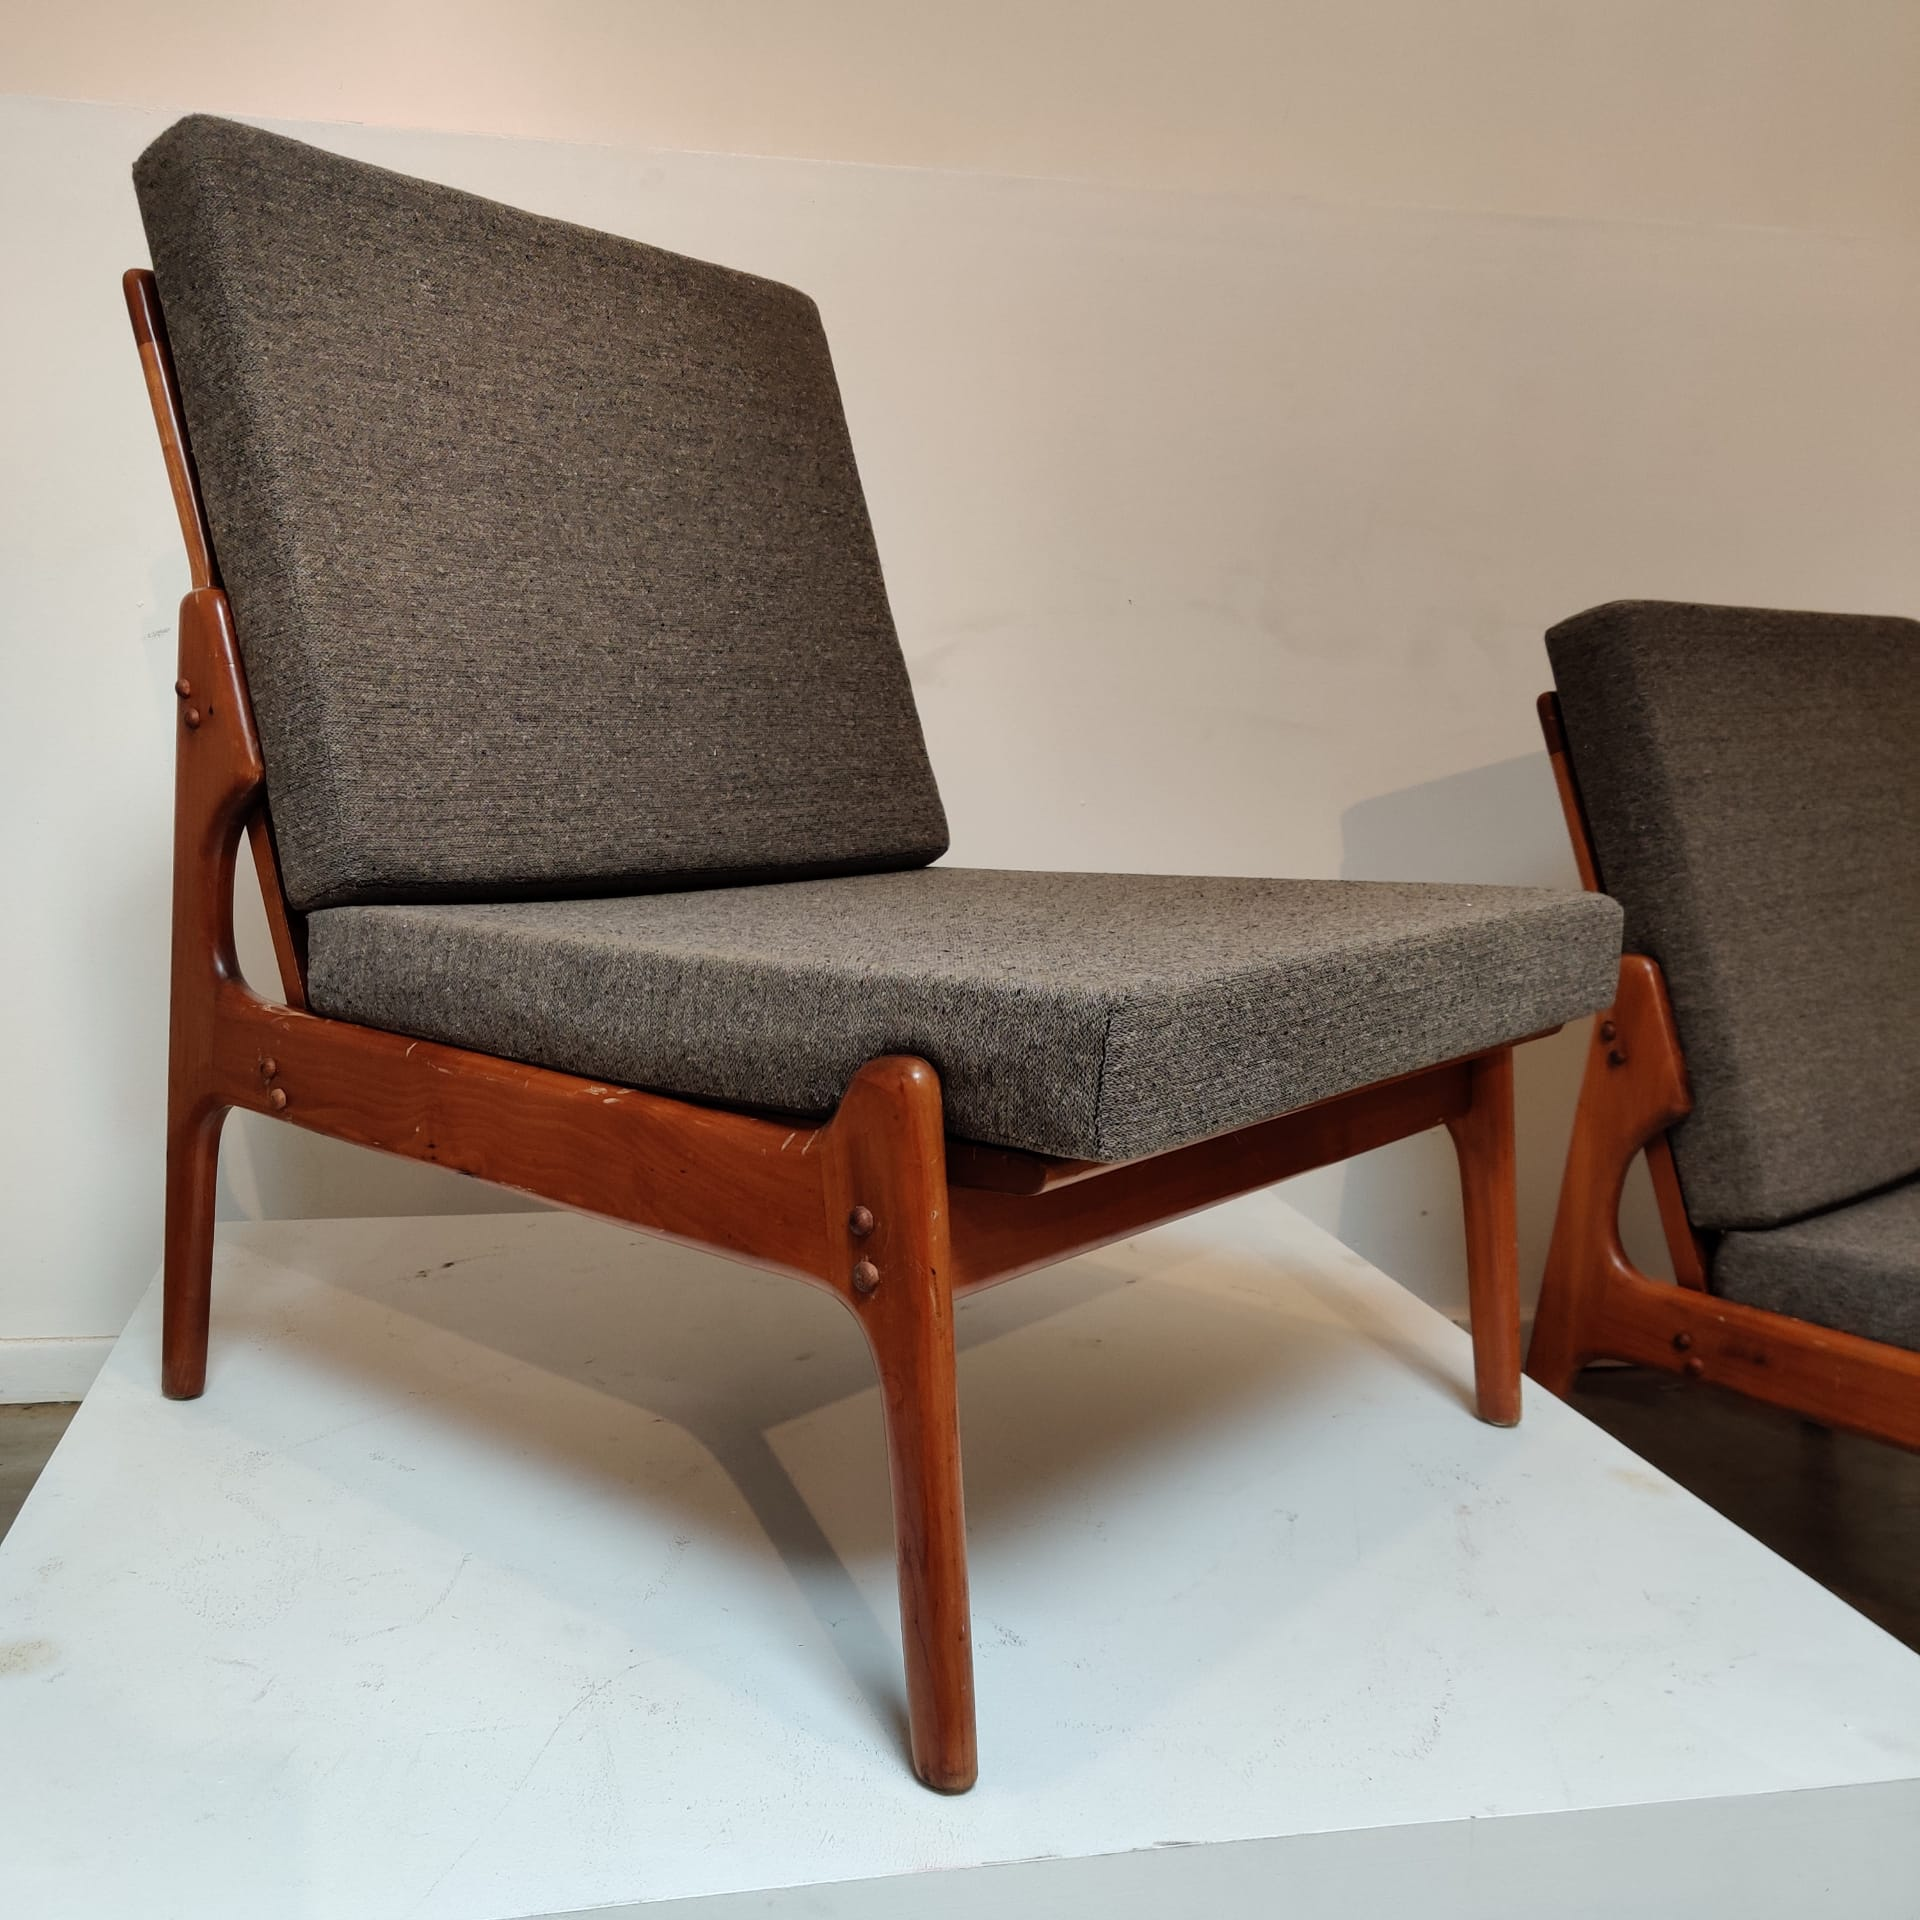 Danish pair of lounge chairs by Erik Buch